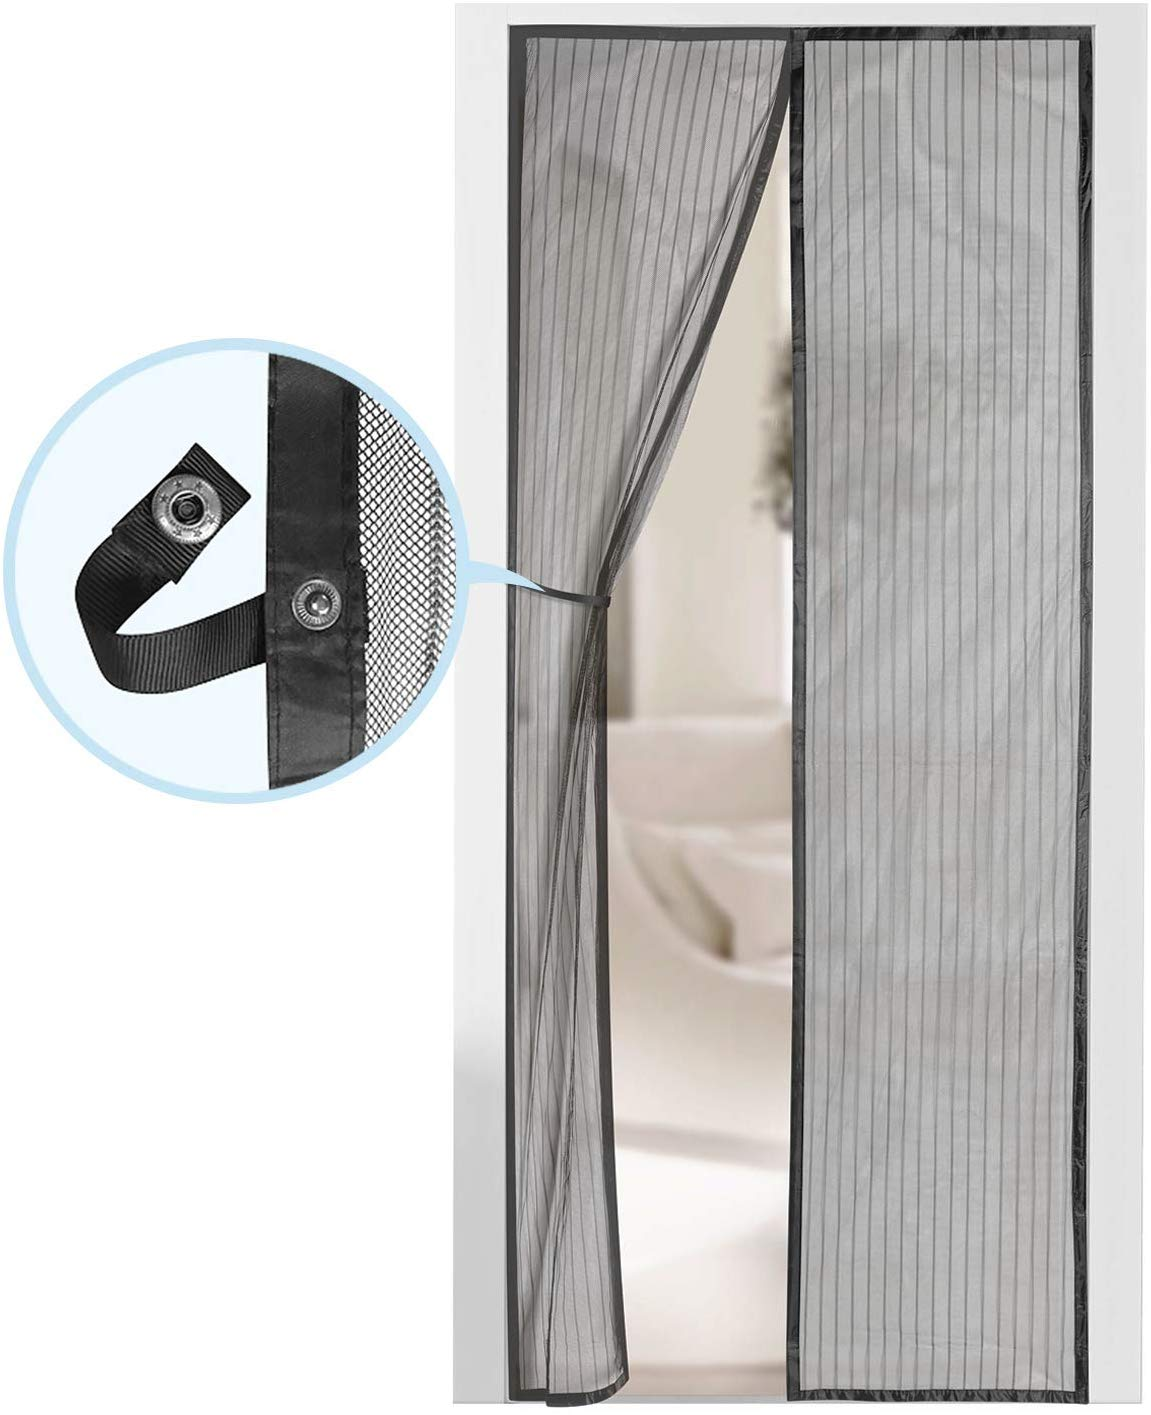 "Magnetic Screen Door - Self Sealing, Heavy Duty, Hands-Free Mesh Partition Keeps Bugs Out - Pet and Kid Friendly - Patent Pending Keep Open Feature - 38"" x 83"" - by Augo"